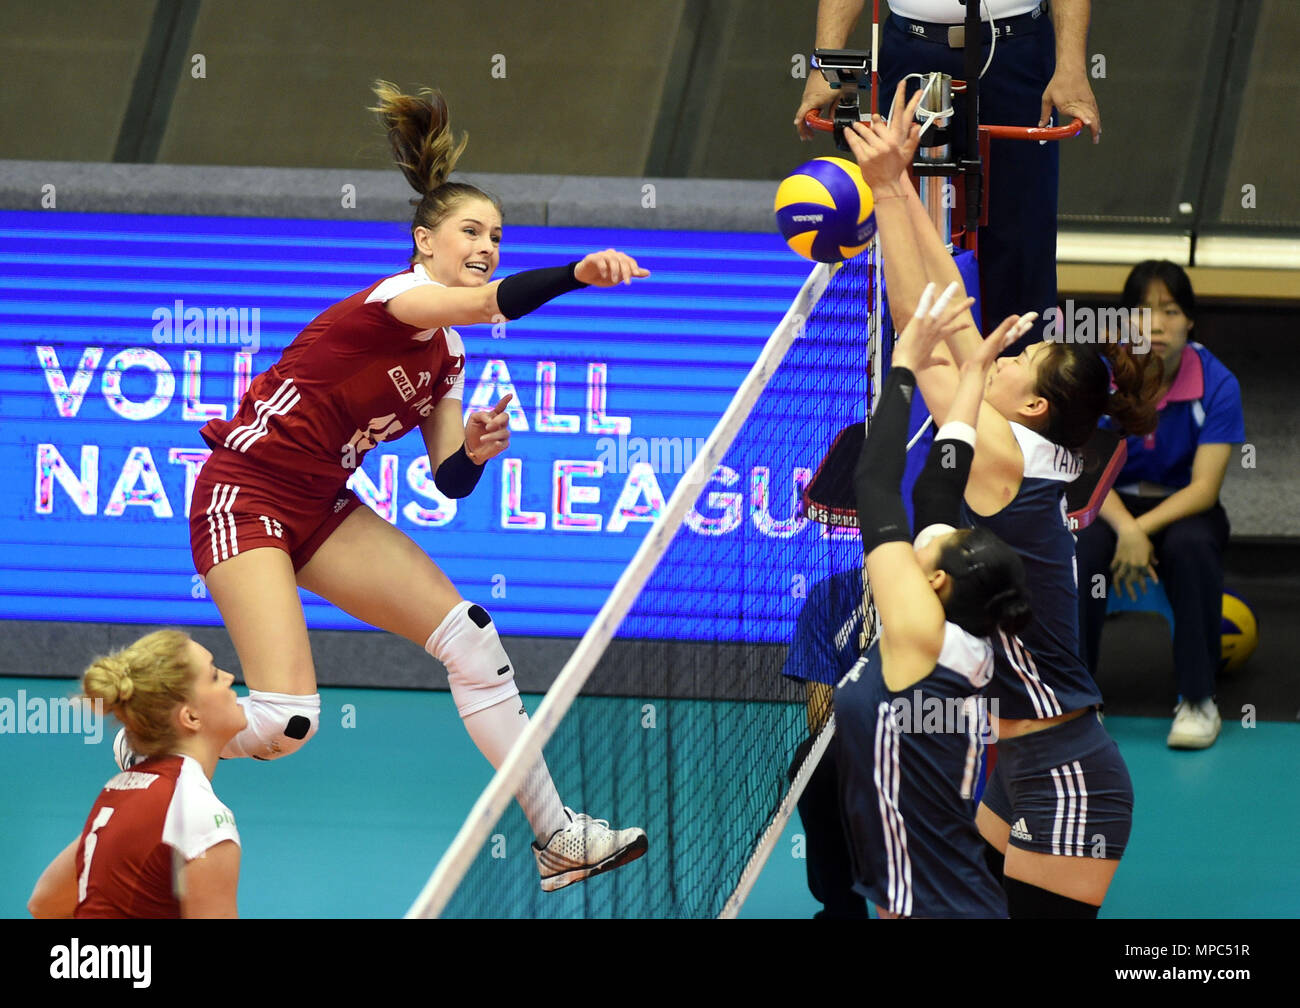 180522 Macau May 22 2018 Xinhua Martyna Grajber 2nd L Of Poland Spikes The